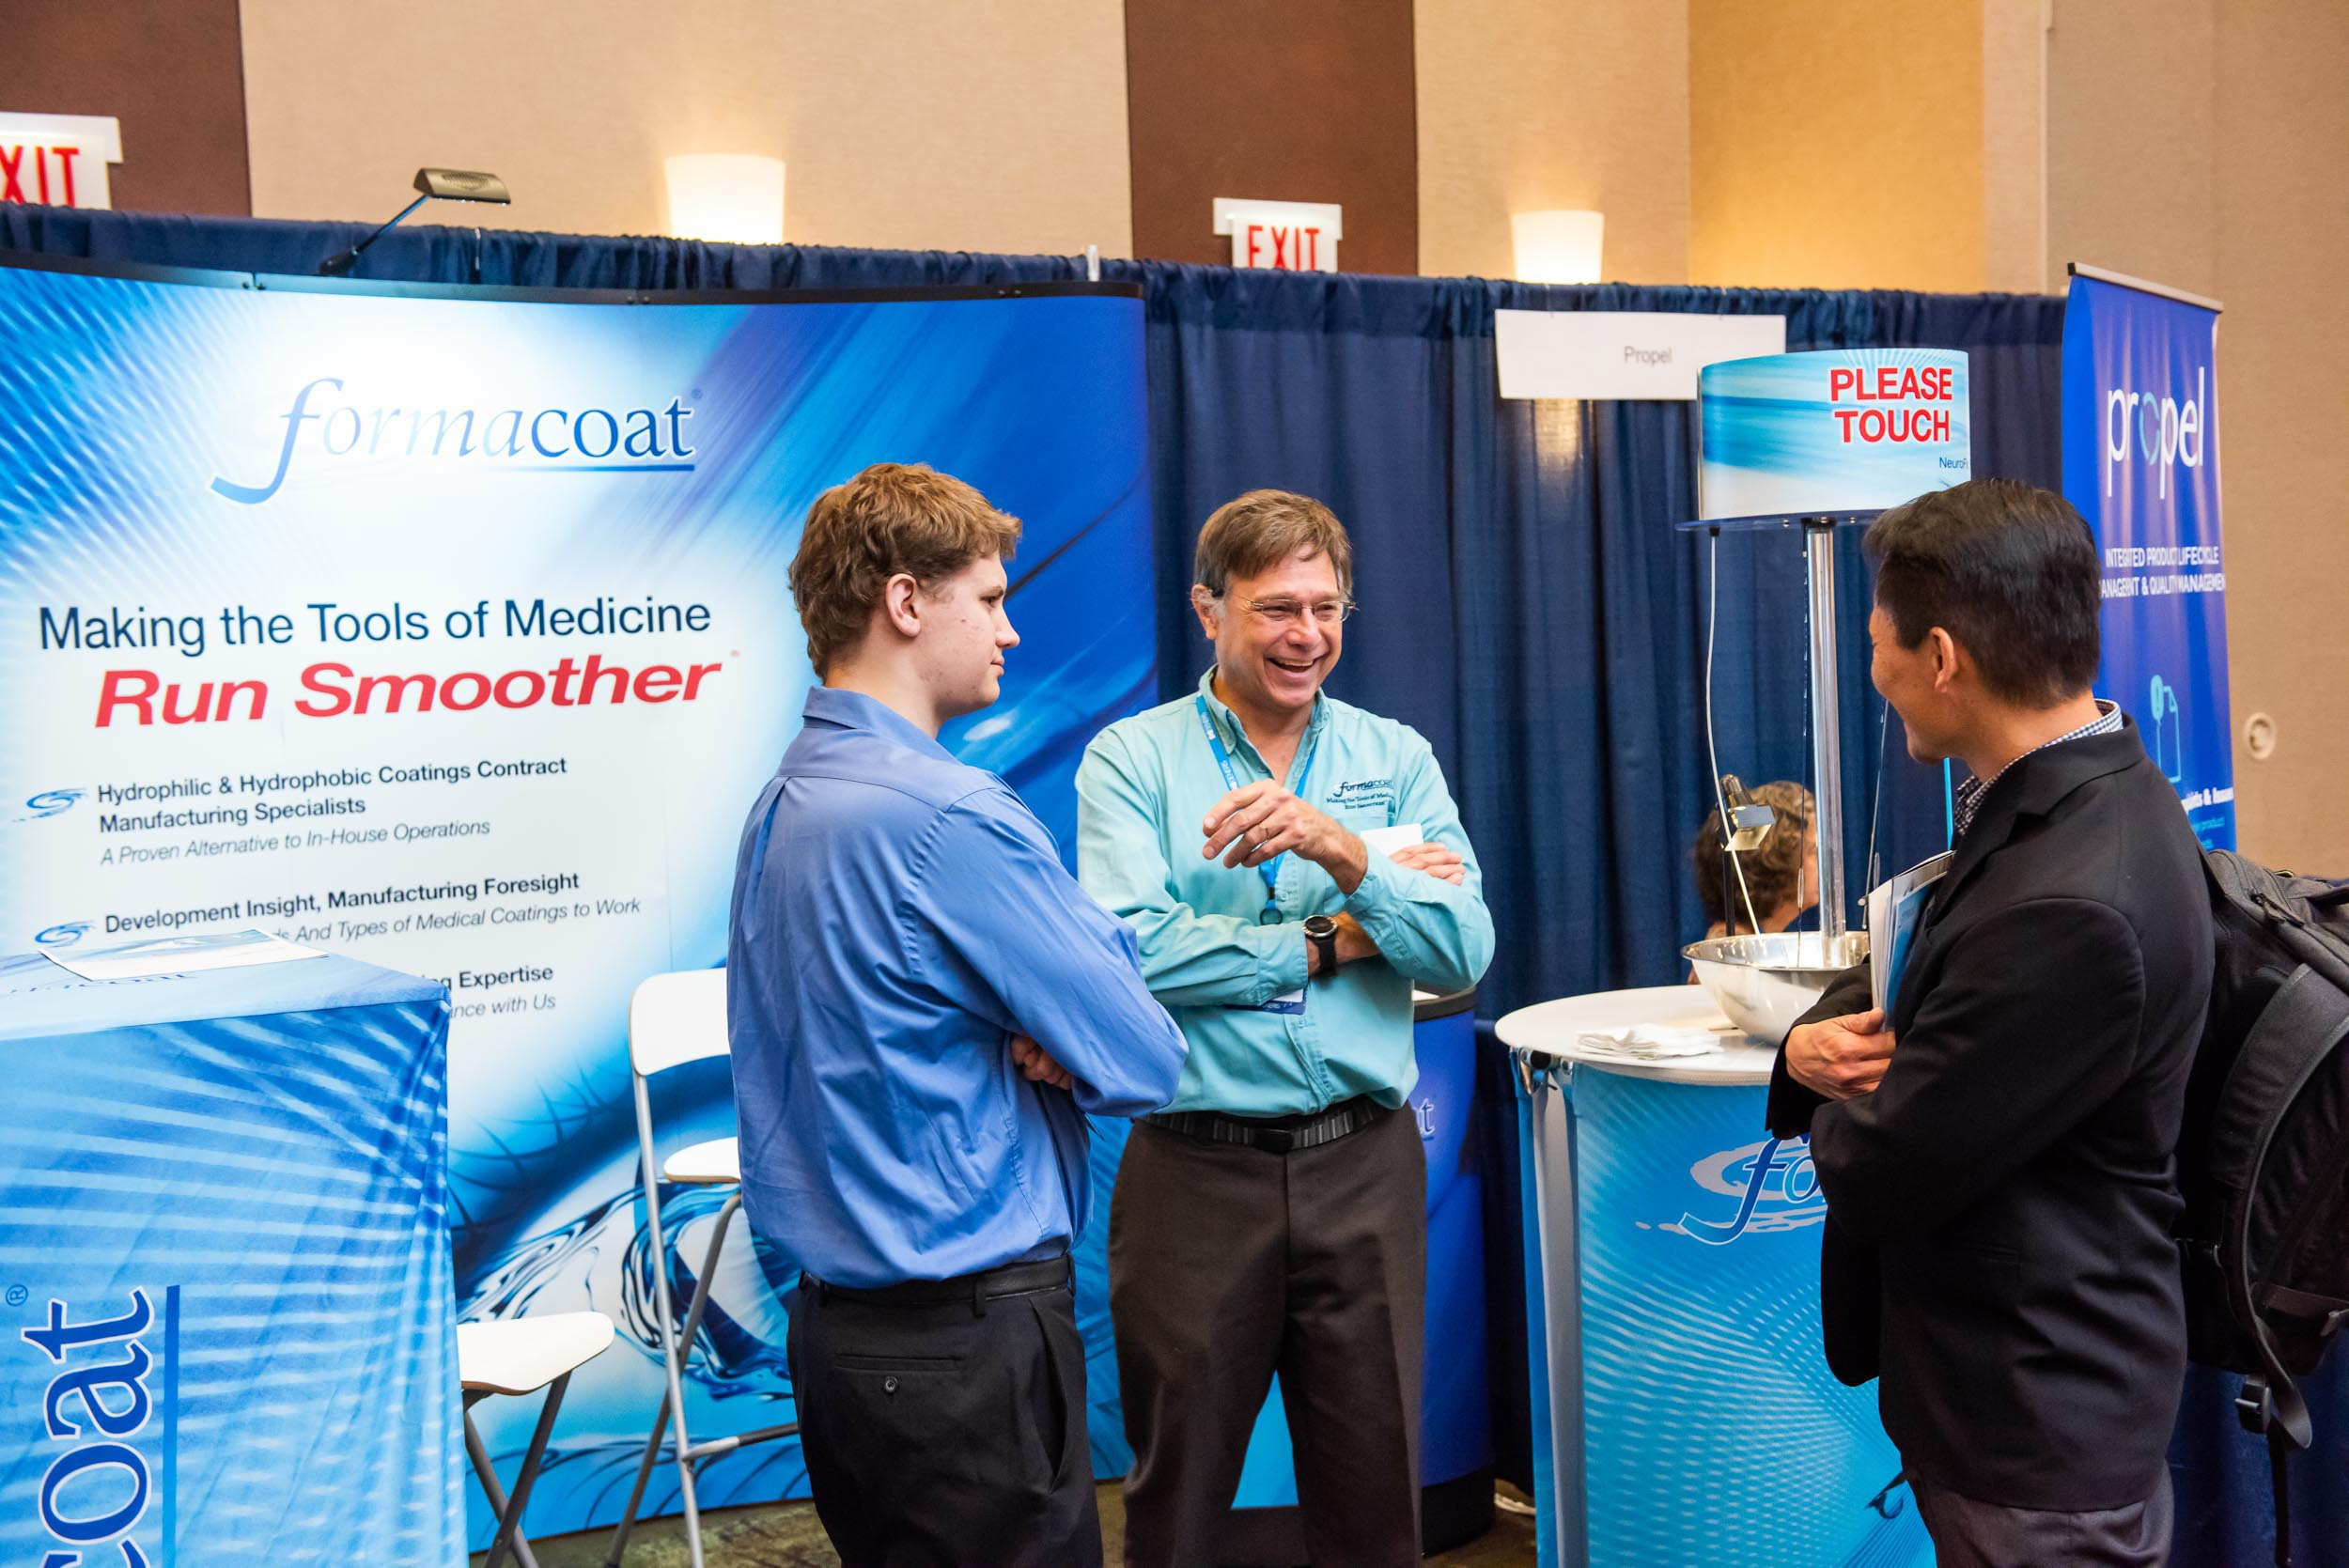 181024 - American Medical Device Summit - mark campbell photography-85_Resized_Resized.jpg